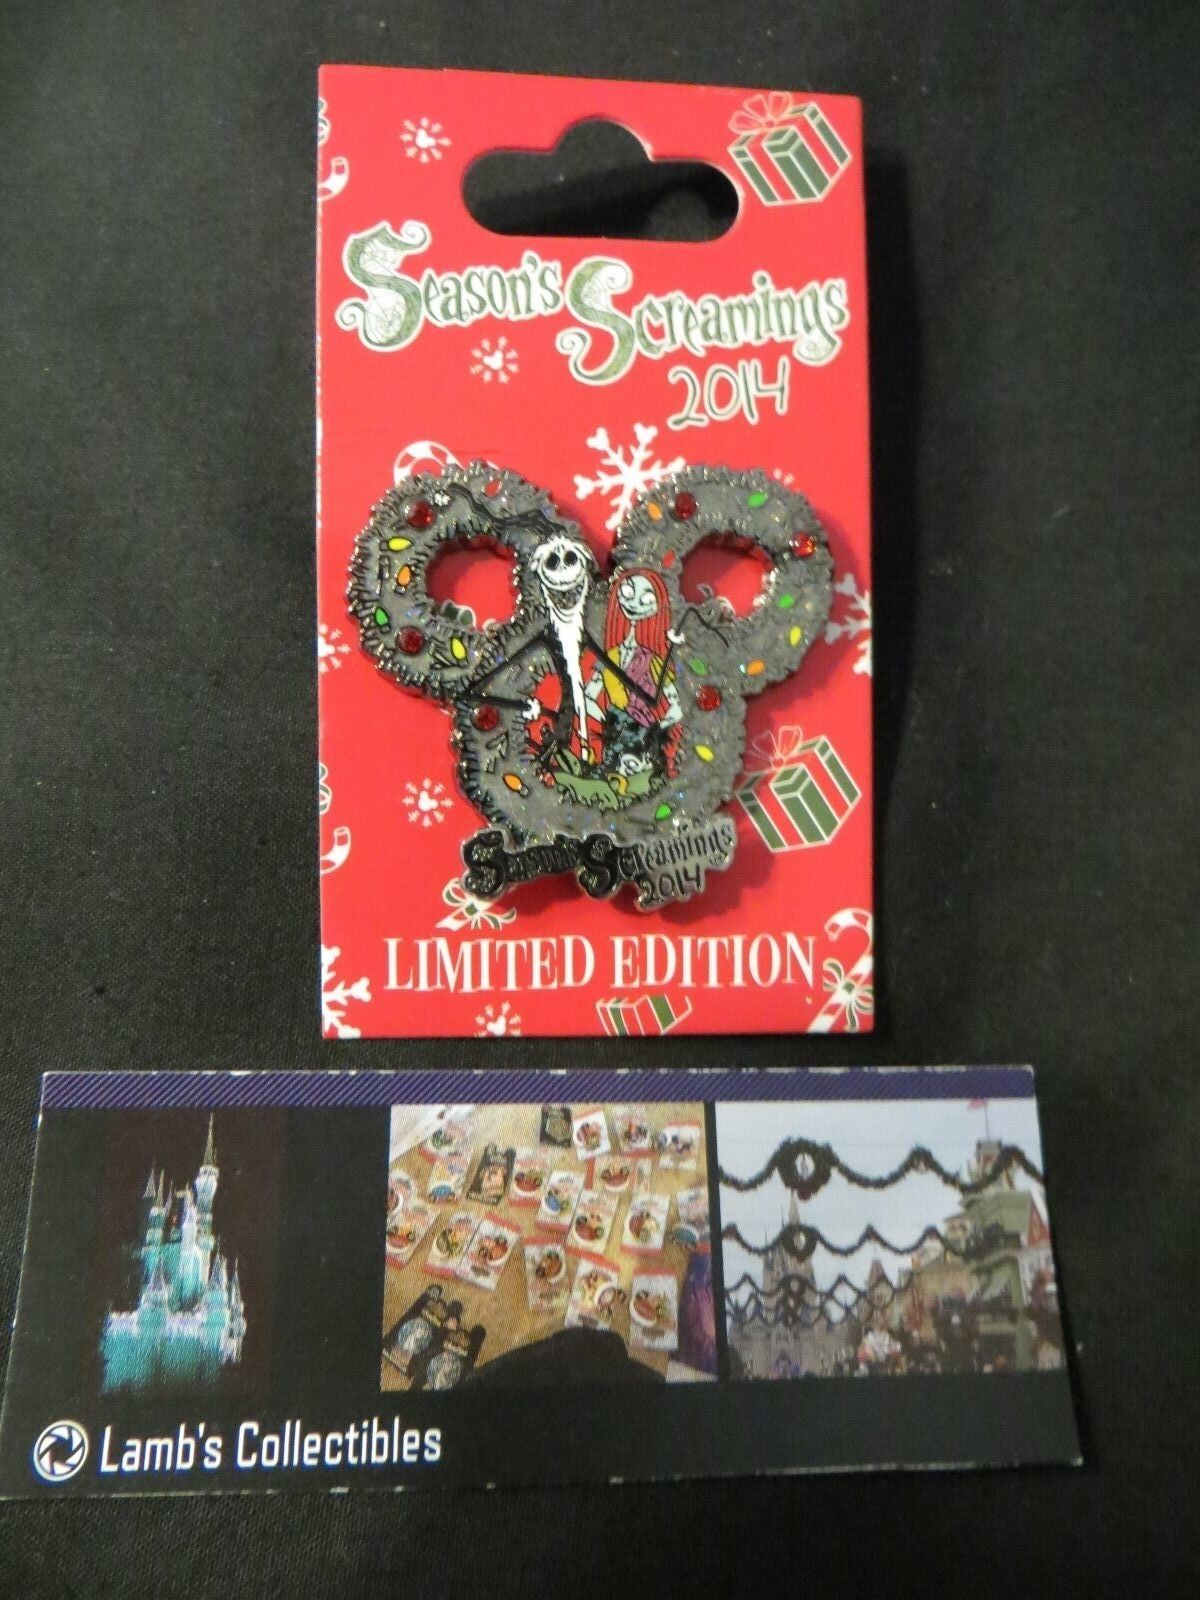 Primary image for Seasons Screaming's Jack Skellington Sally LE 3500 WDW 2014 Disney Pin Christmas